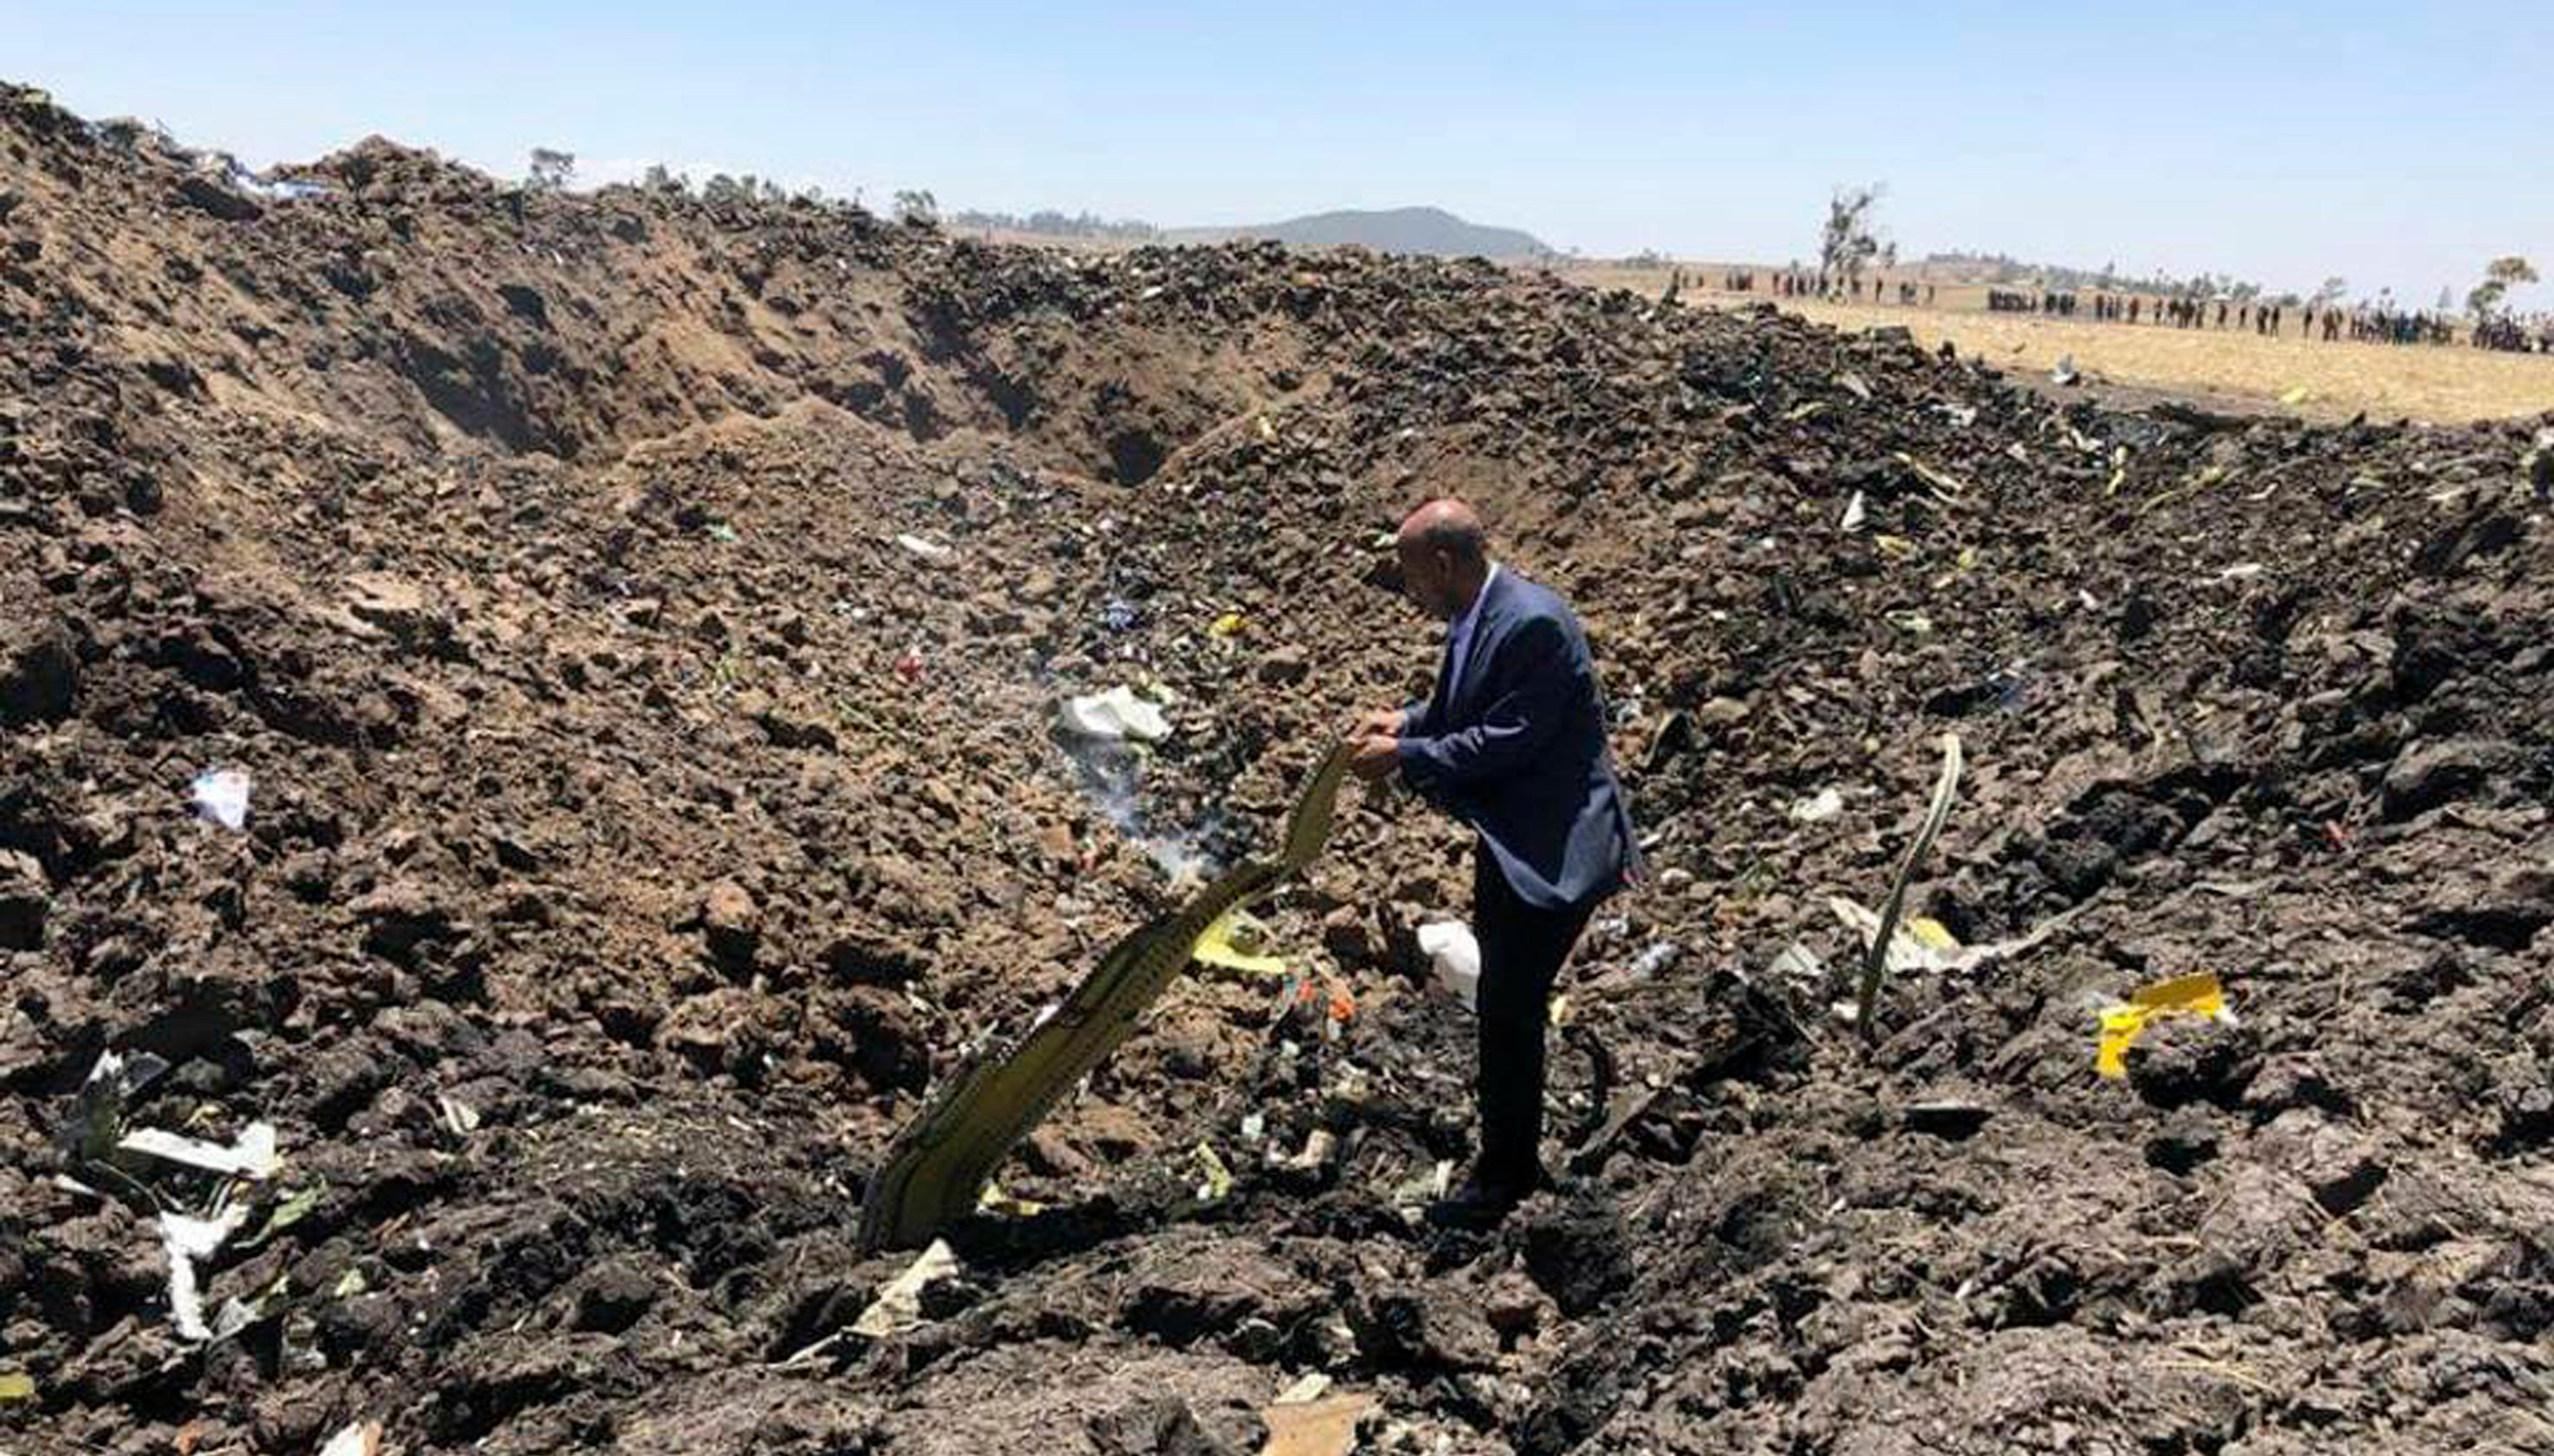 Boeing 737 Max: Georgetown student among 157 Ethiopian crash victims